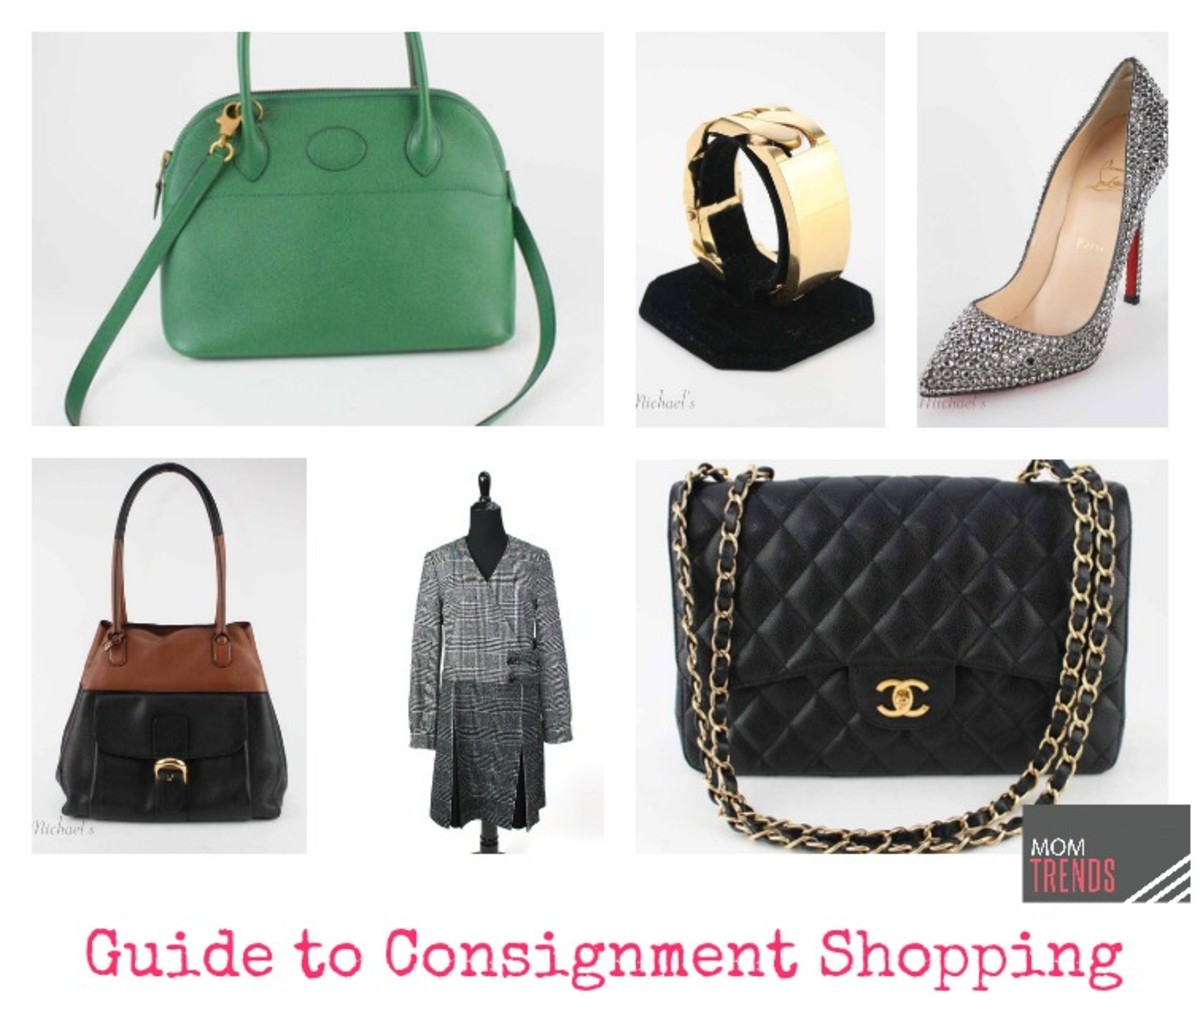 Guide to Consignment Shopping